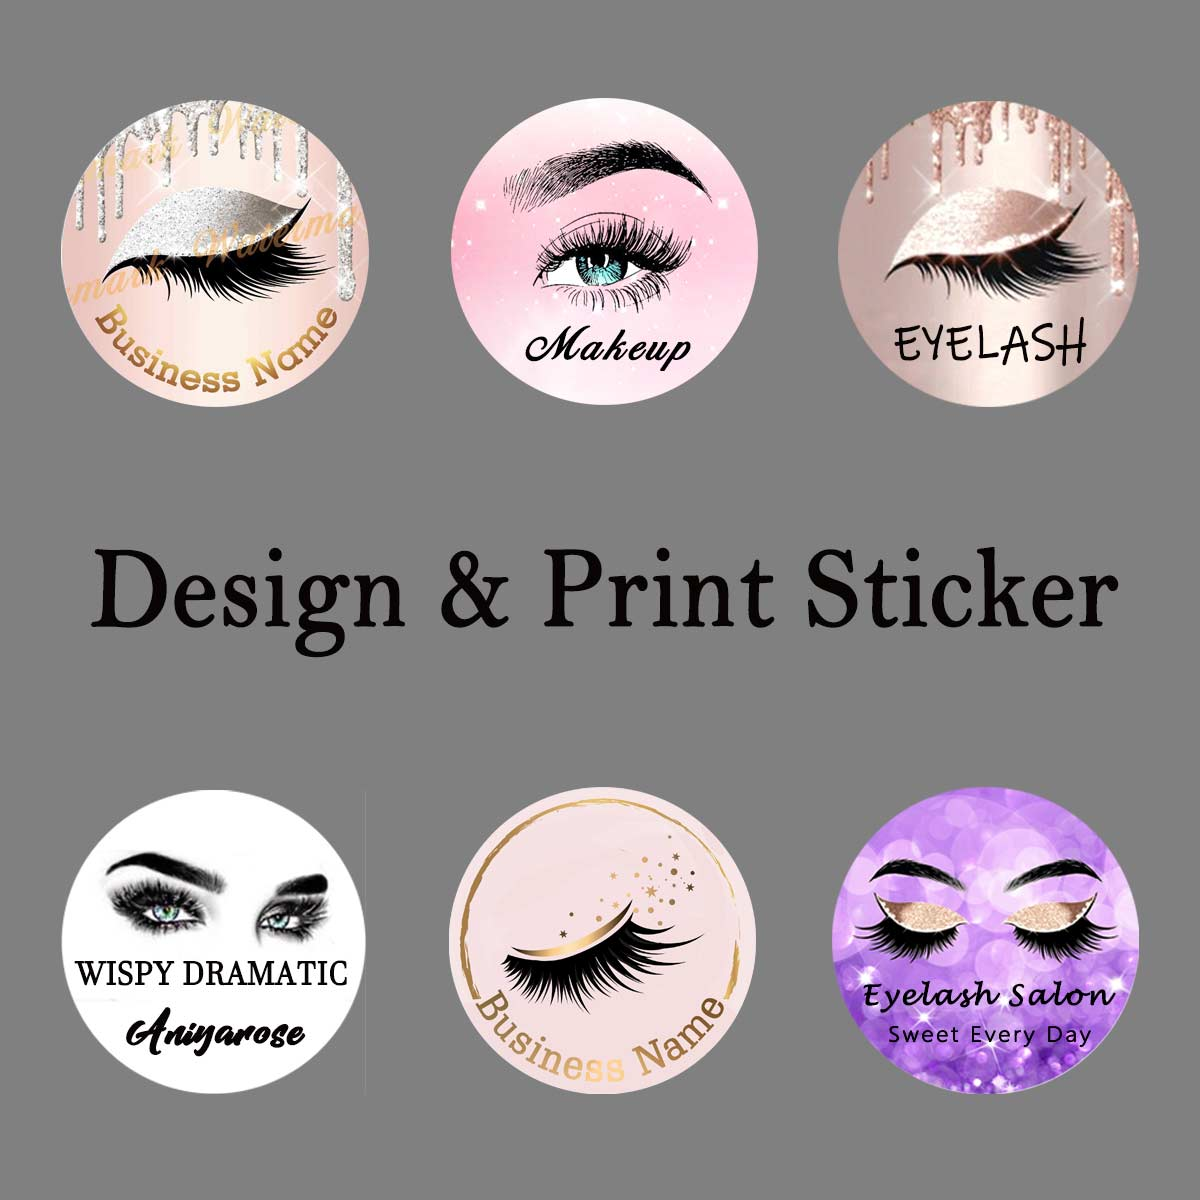 Customize Logo Edit Picture Print Sticker Professional Design and Print Servie for Eyelash Store or Beauty Salon image